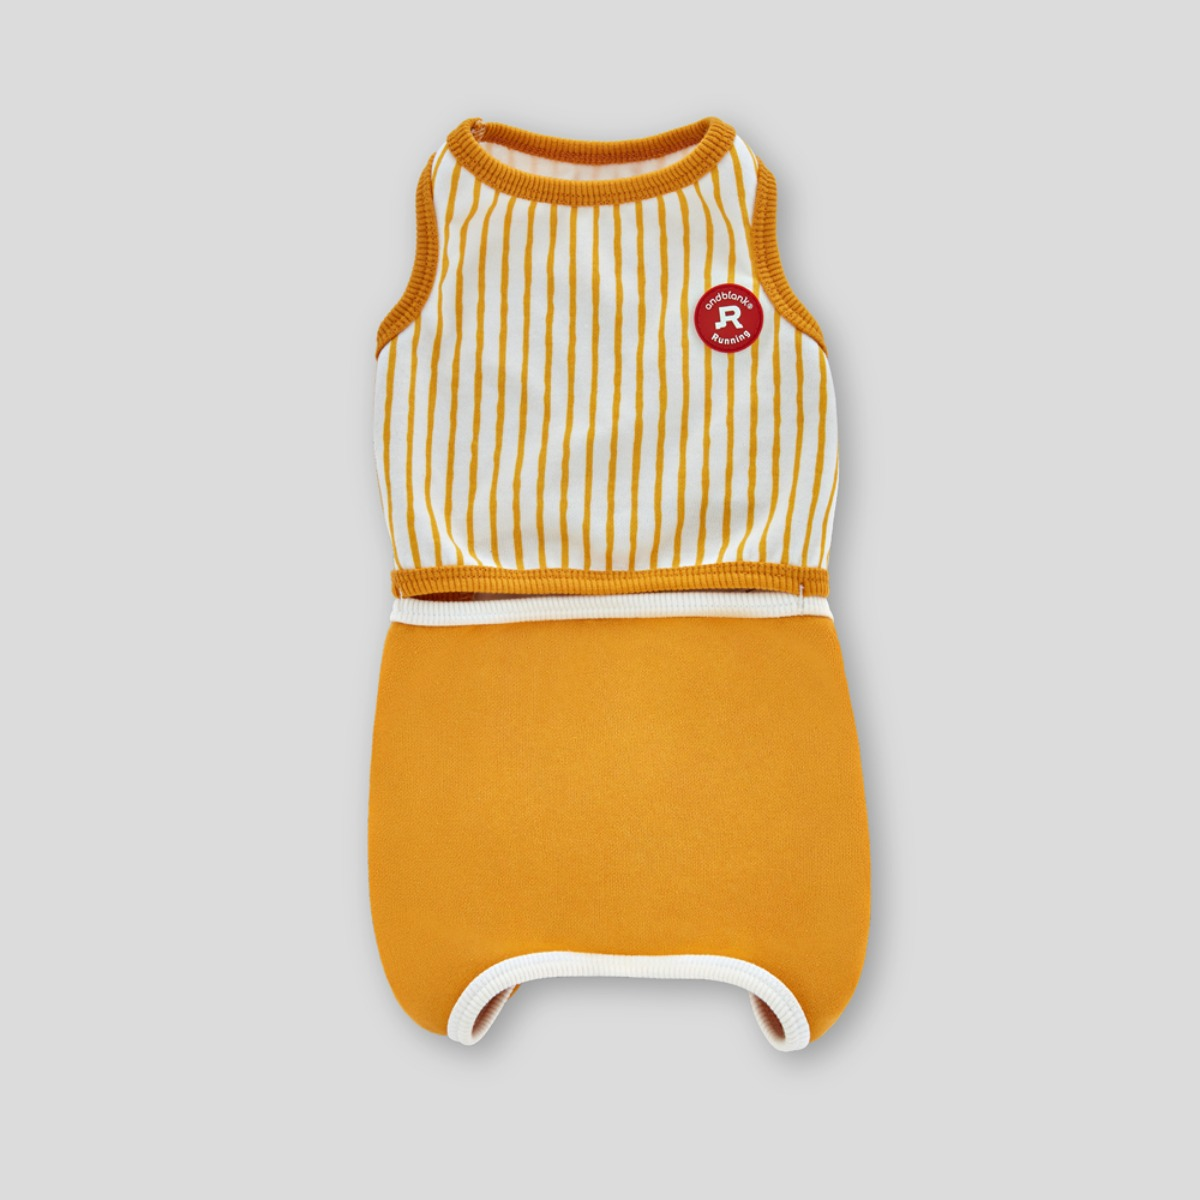 [andblank] STRIPES, ROMPER : YELLOW